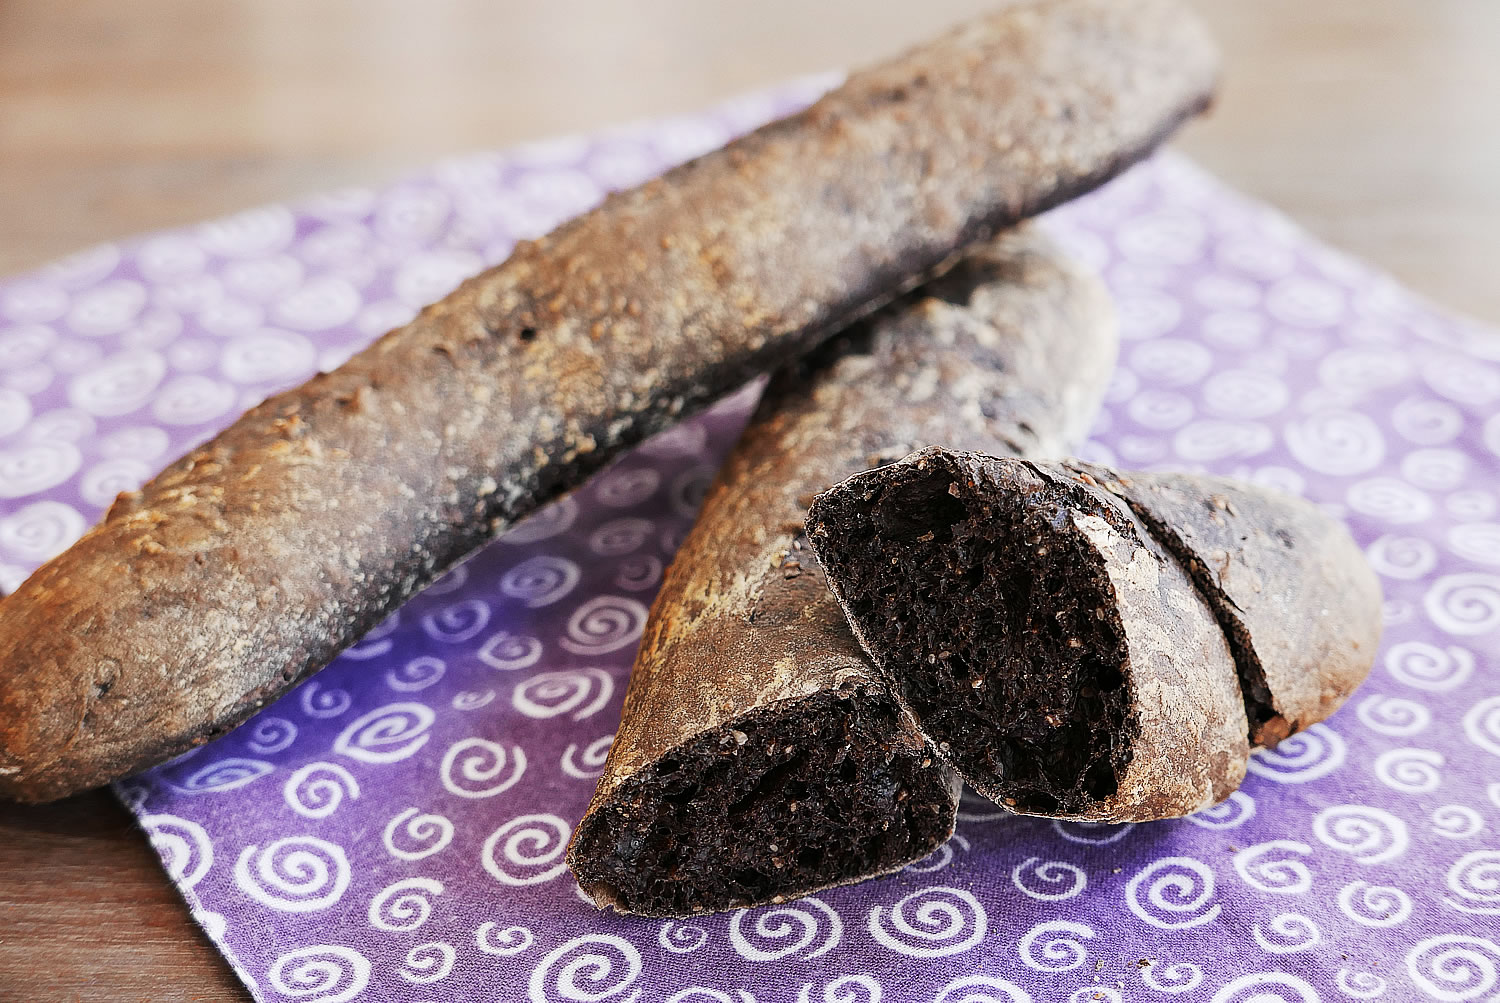 Black baguette made with black cocoa powder